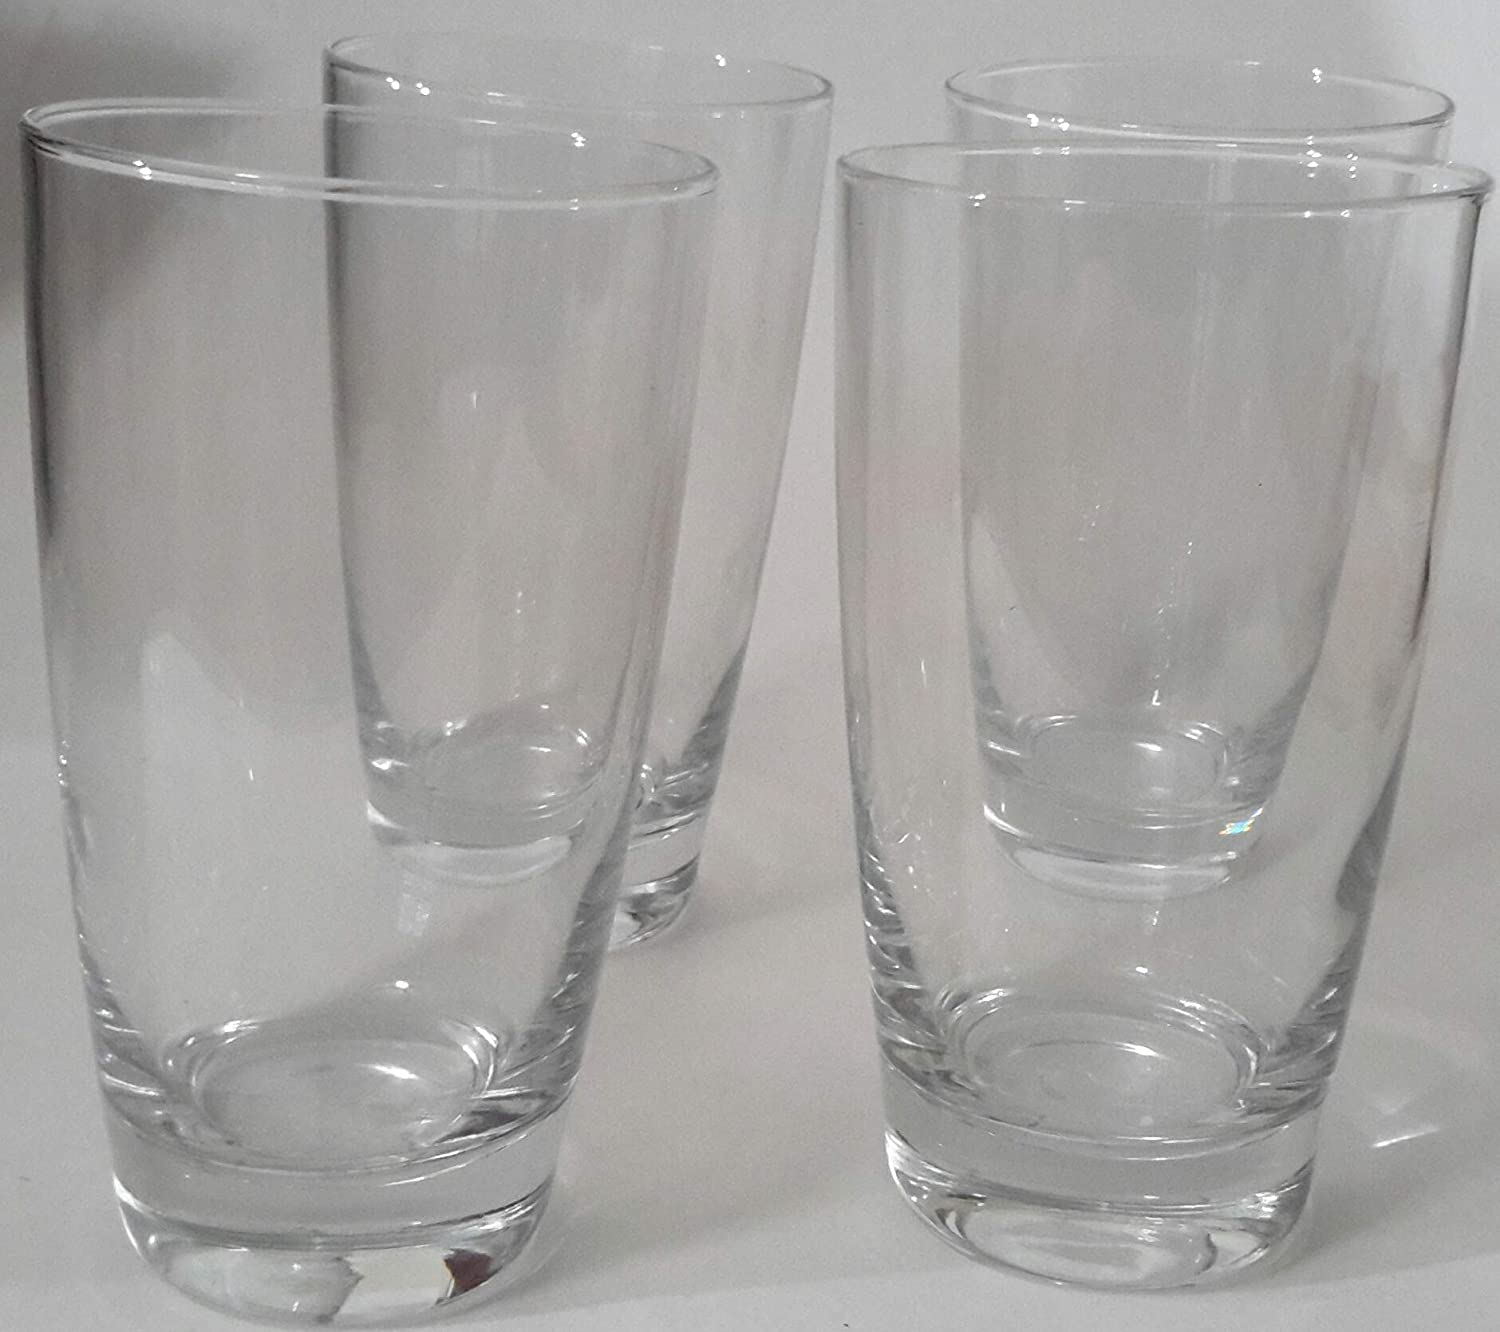 FOOD Network Signature Series NAPA Lead-Free CRYSTAL HIGHBALL GLASSES - 16 OZ - Set of 4 - Made in Italy